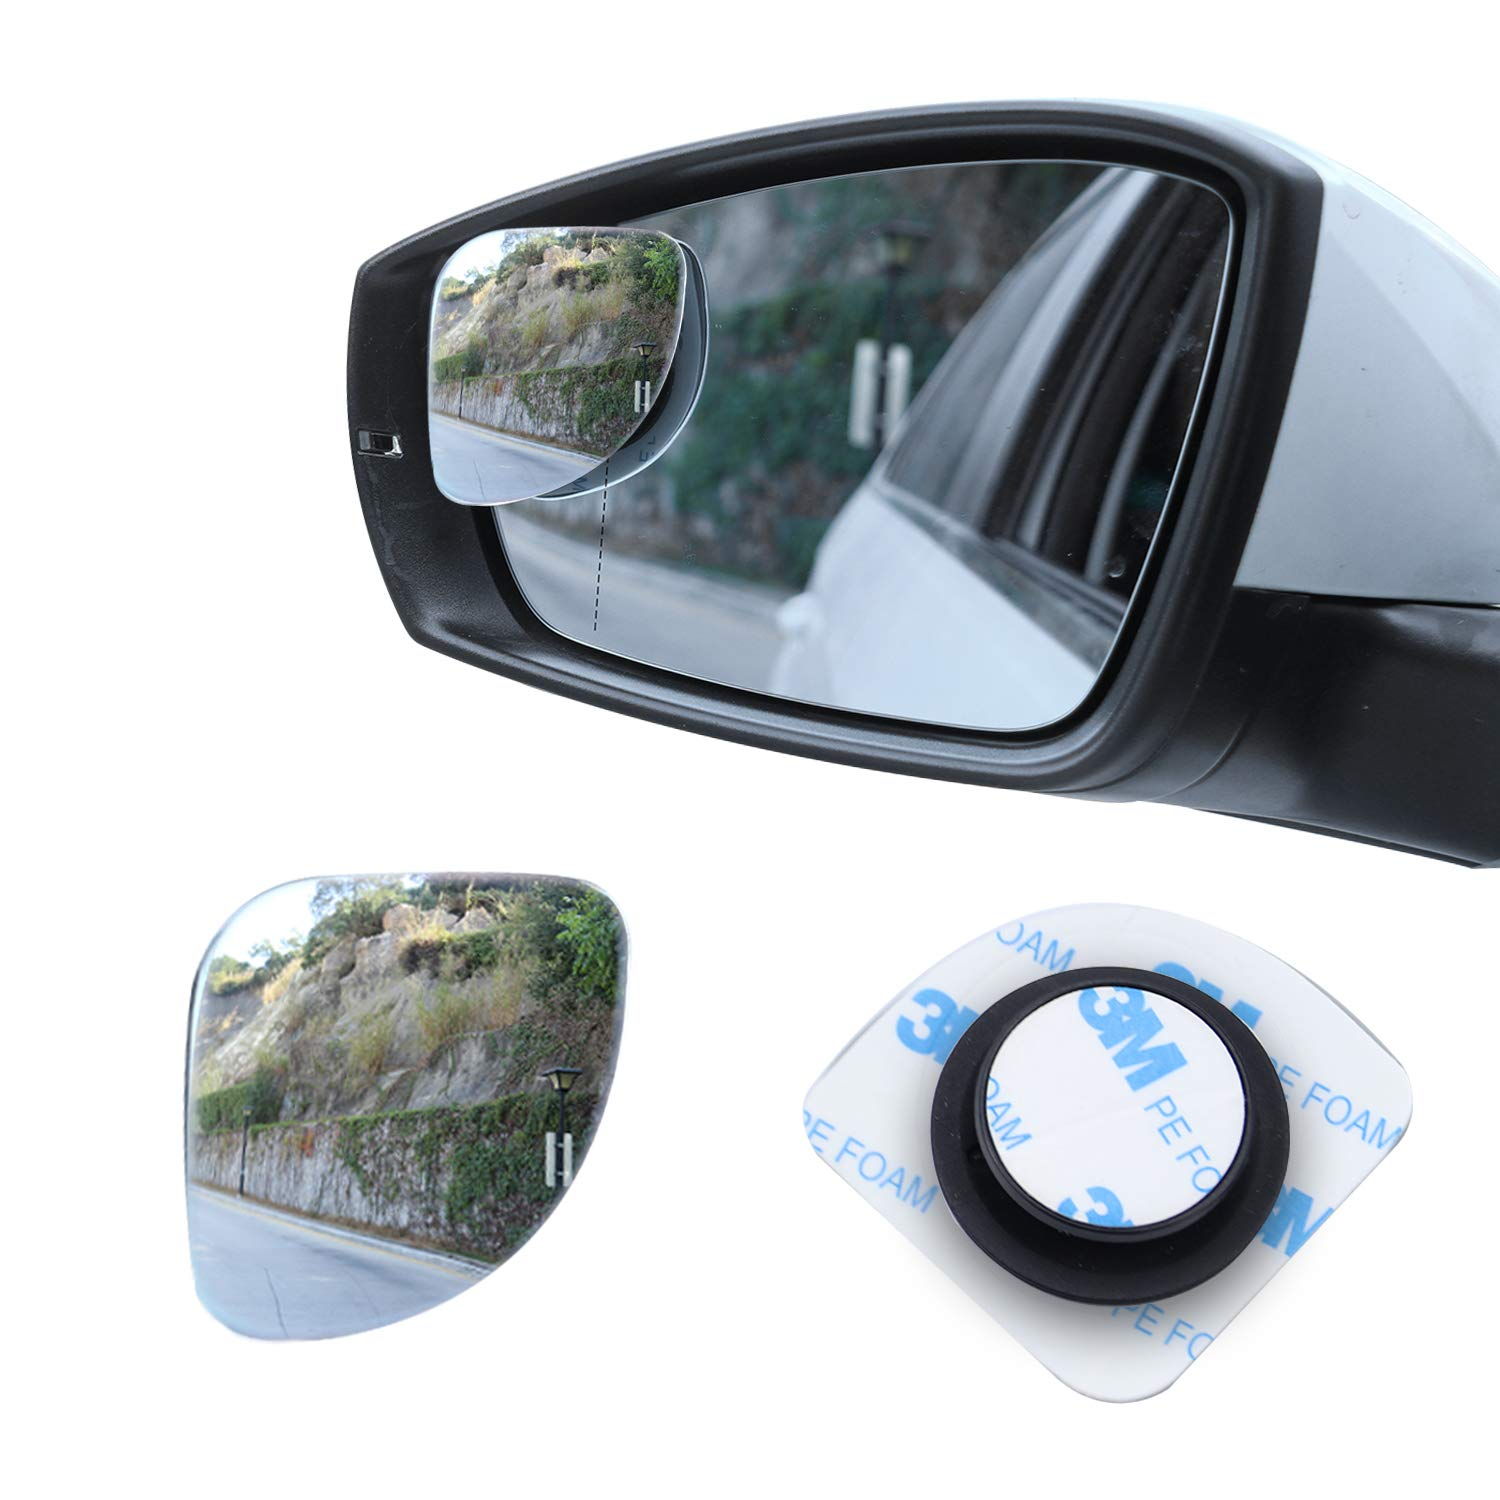 Pack of 2 LivTee Blind Spot Mirror,Fan Shaped 2.5/'/' HD Glass Frameless Convex Rear View Mirror with wide angle Adjustable Stick for Cars SUV and Trucks